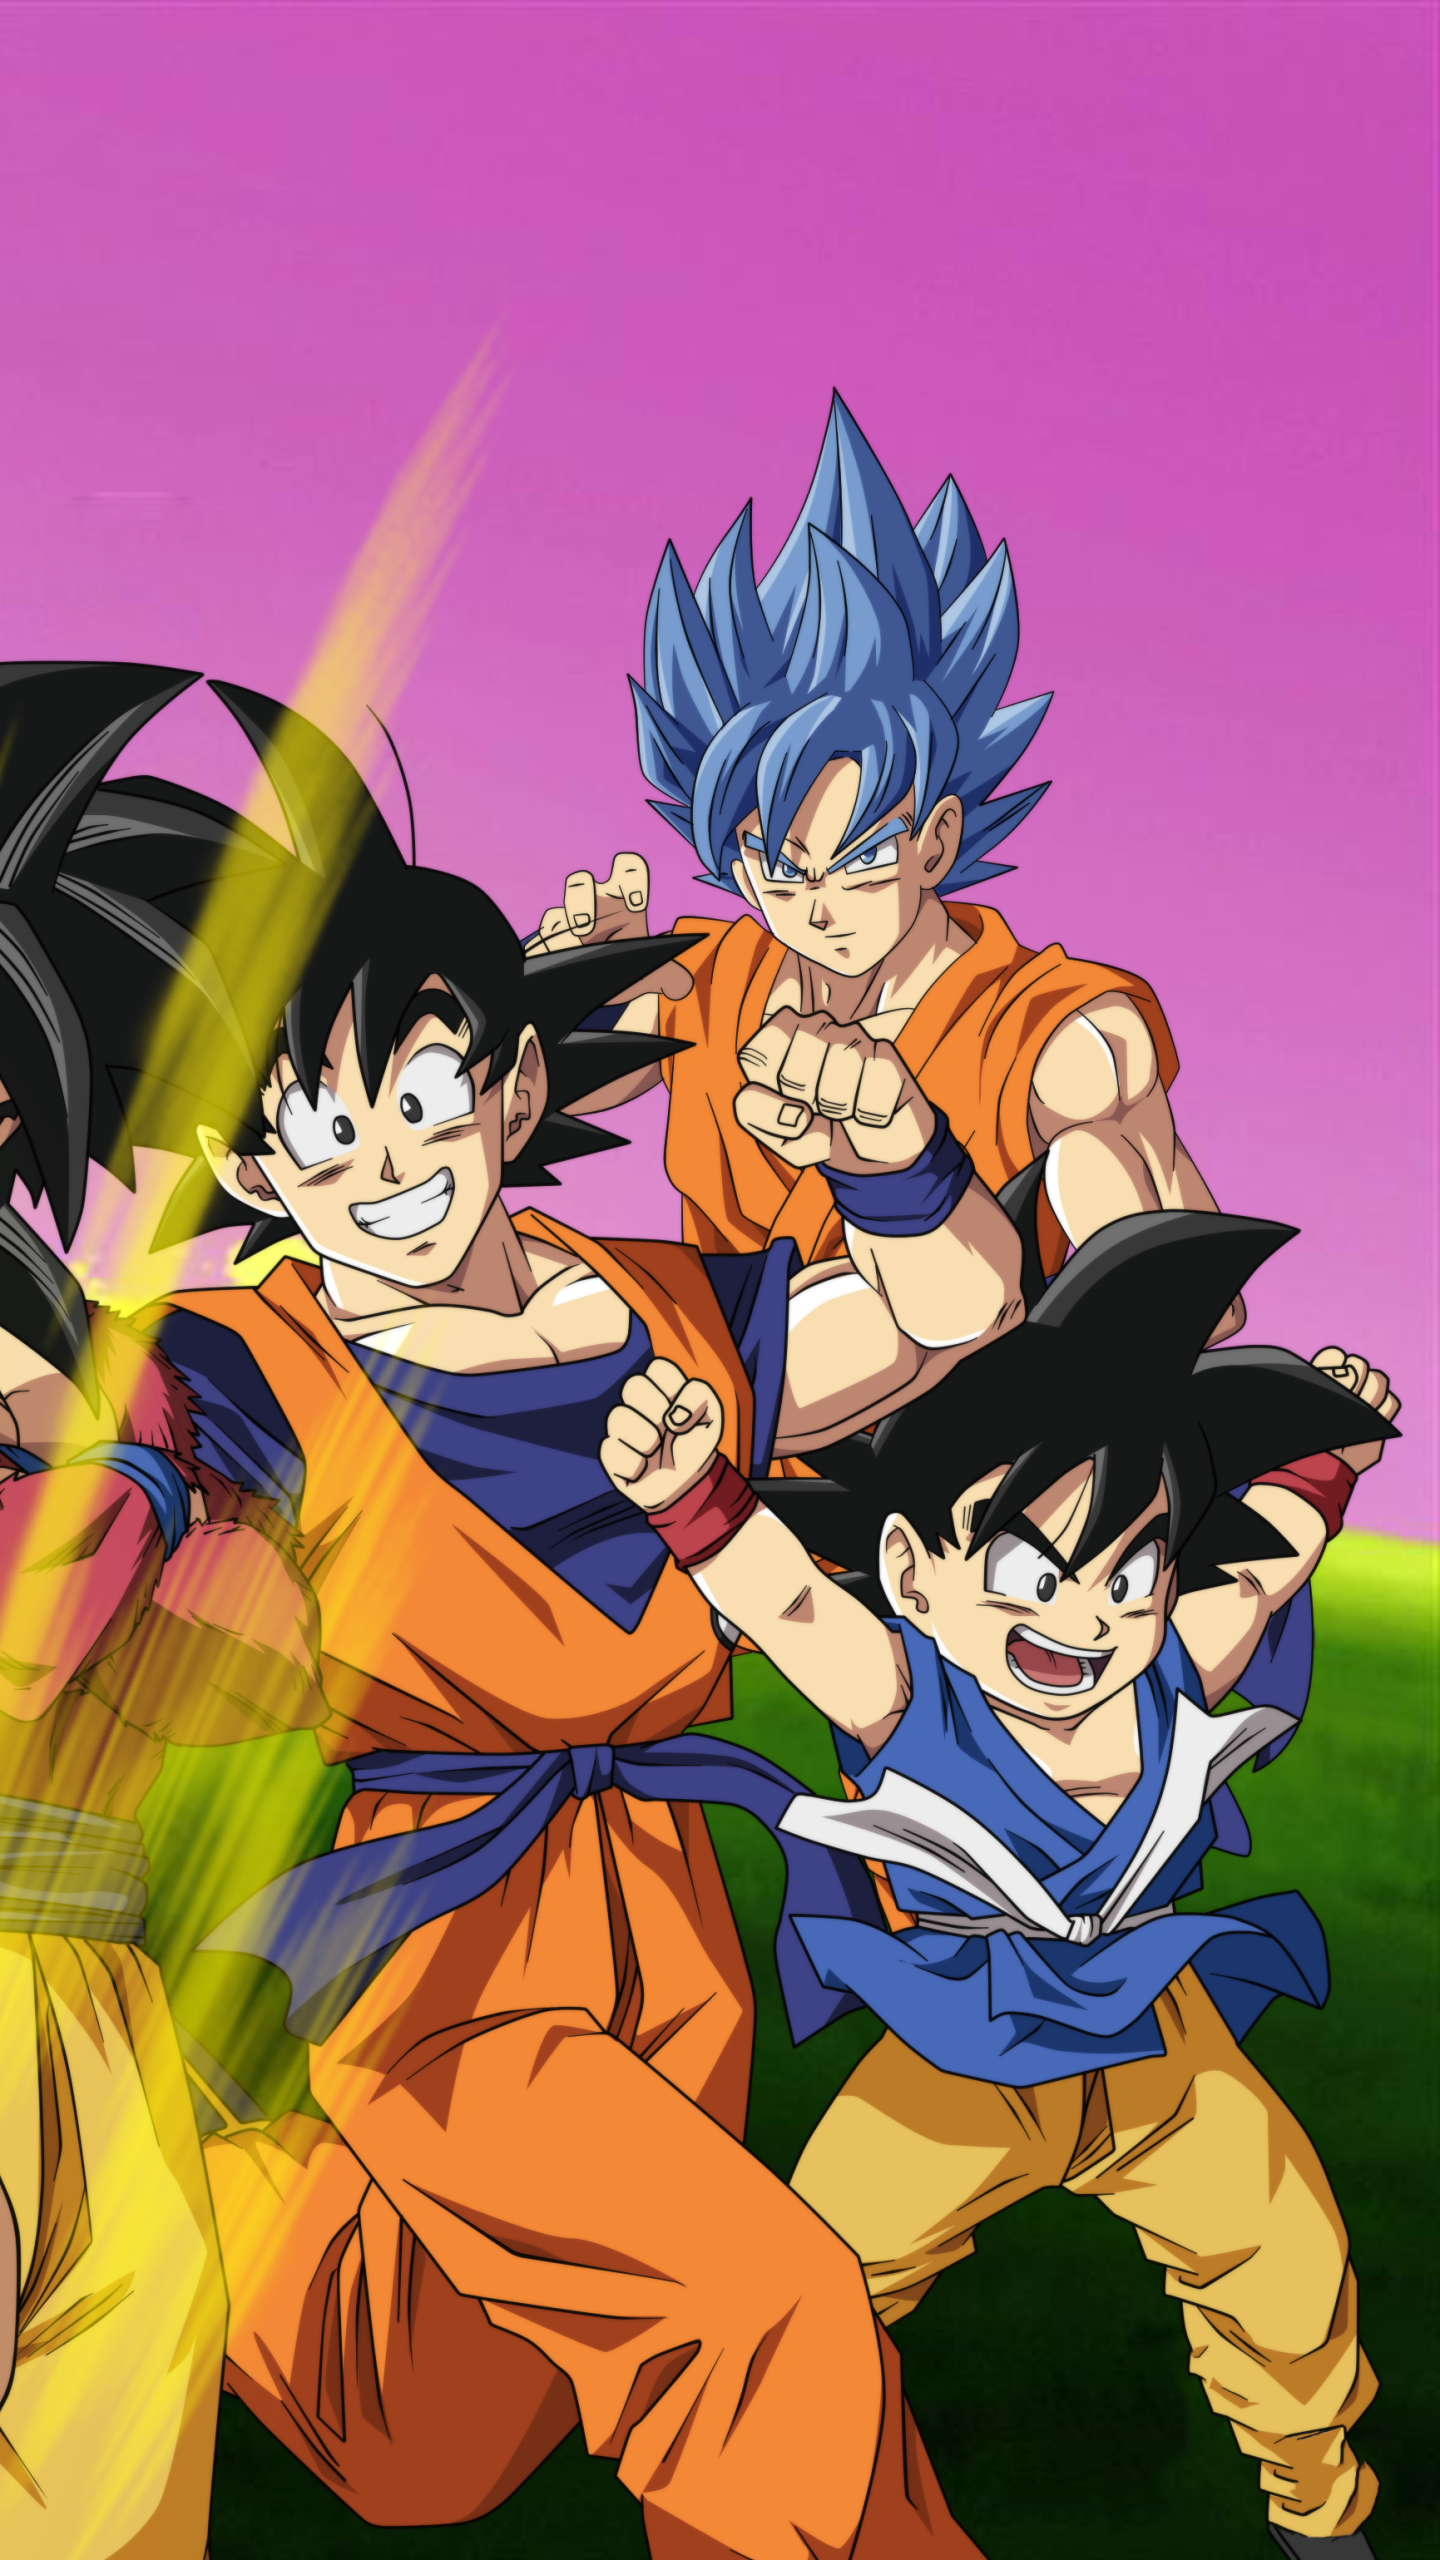 Dragon ball naver iphone 6 plus animedragon ball z wallpaper id 561234 download this wallpaper voltagebd